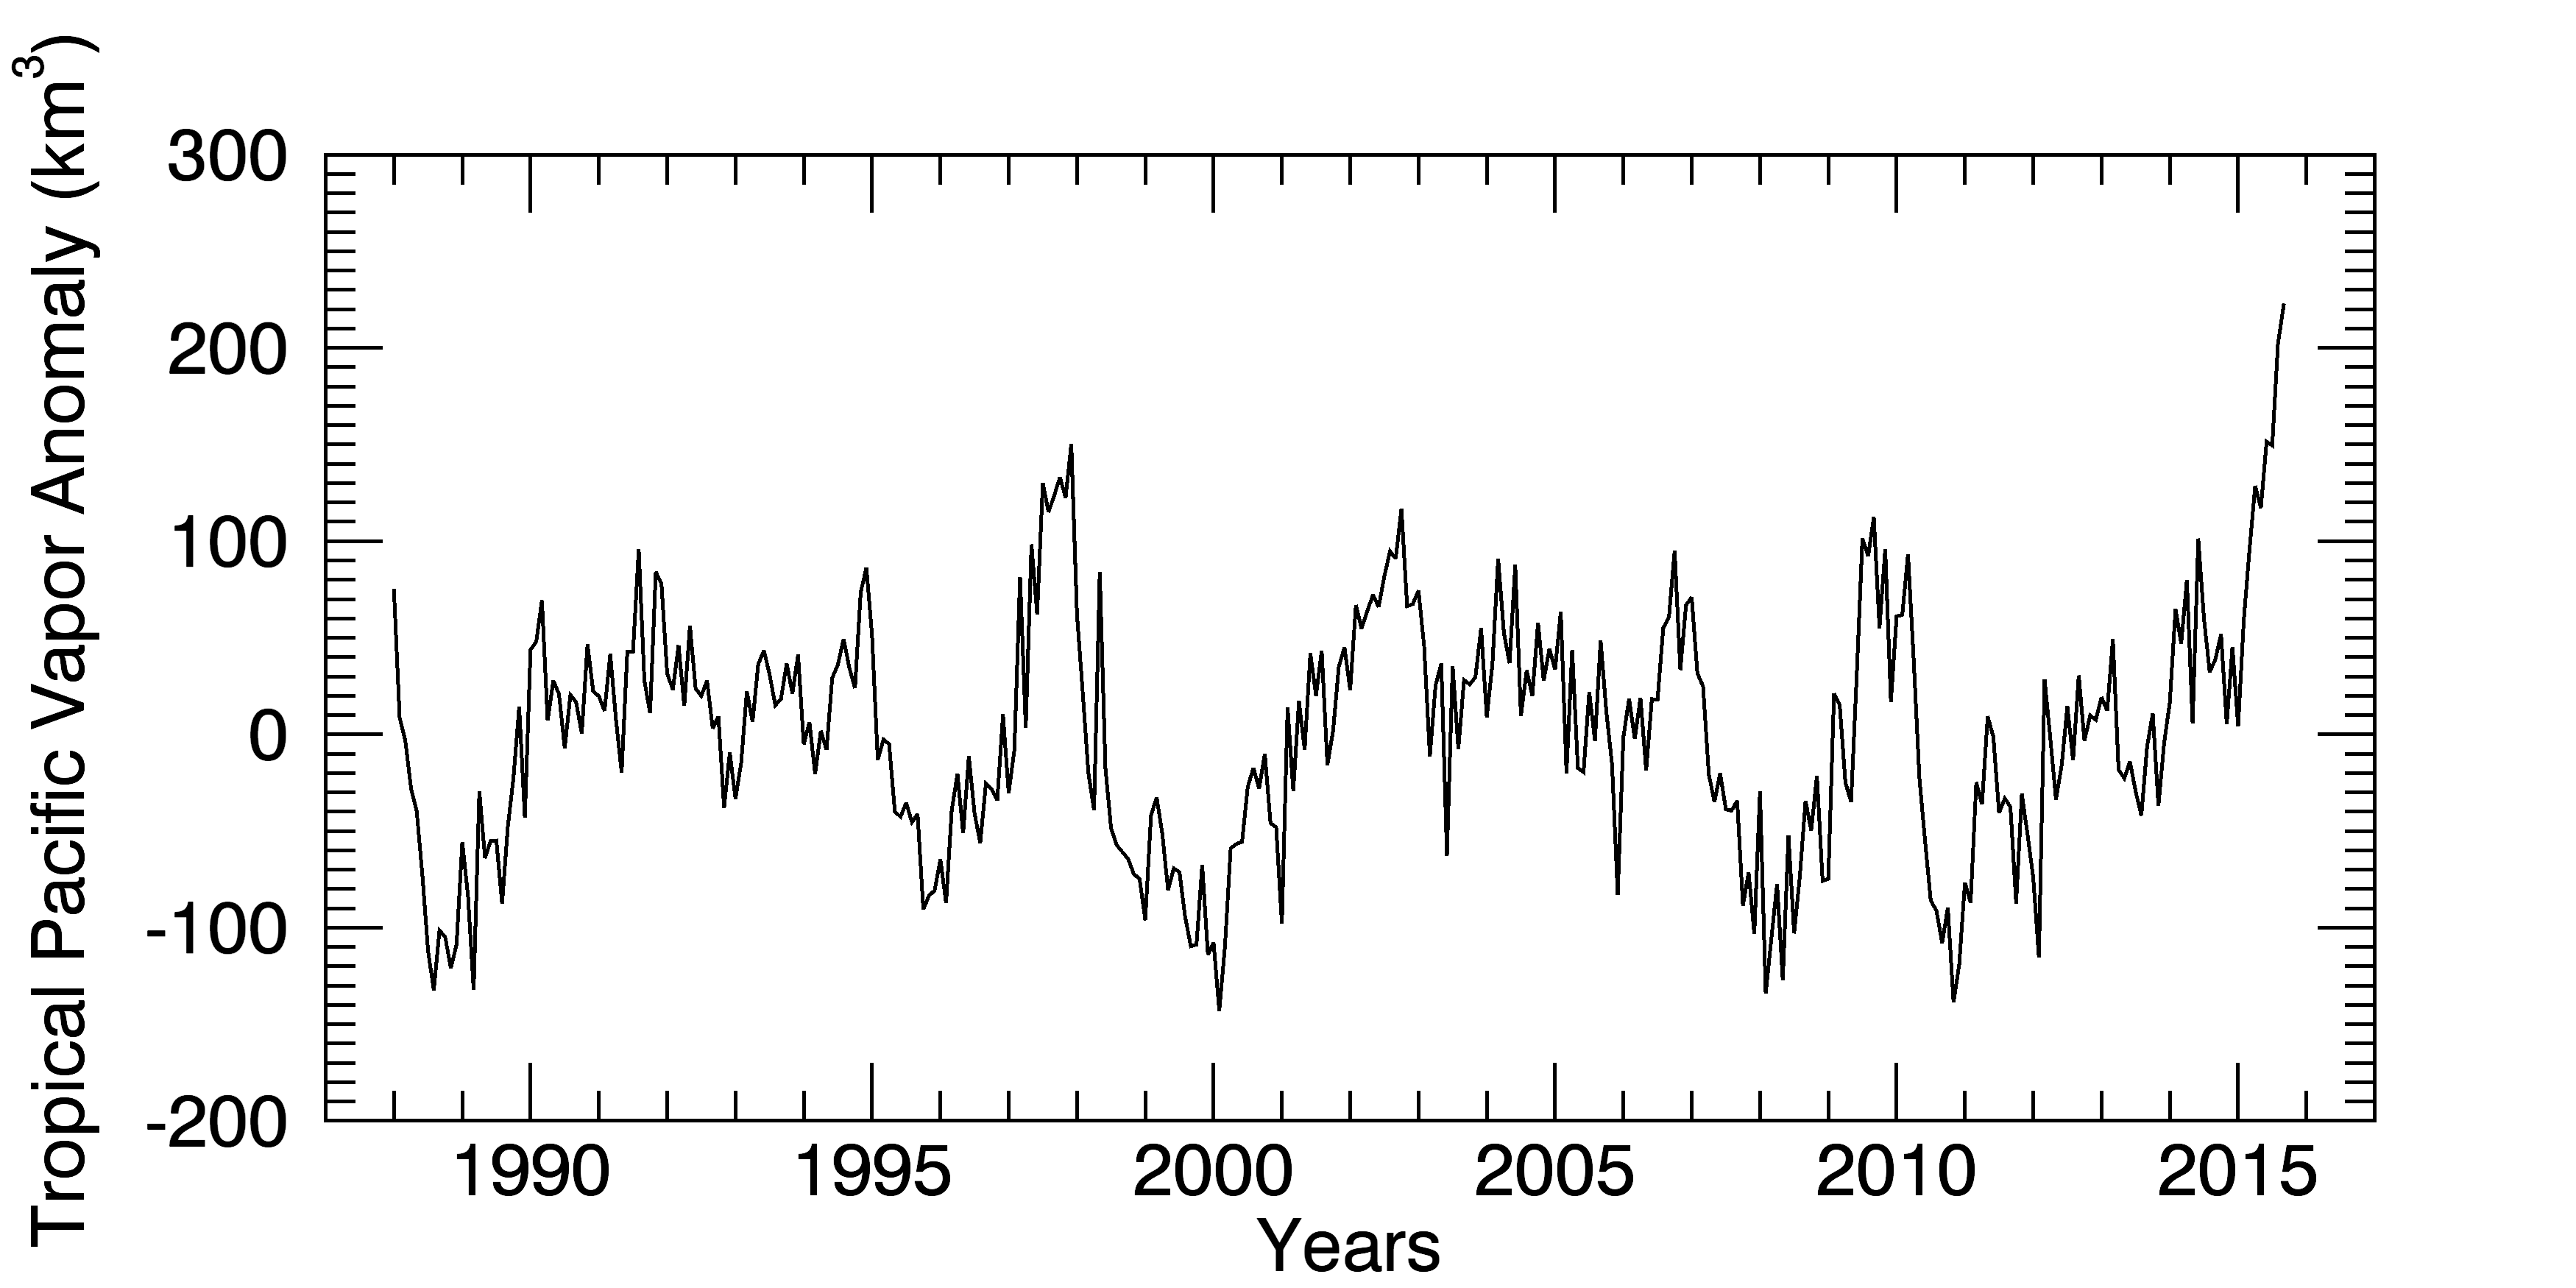 rss_Oct22_trop_pac_timeseries_mears.png